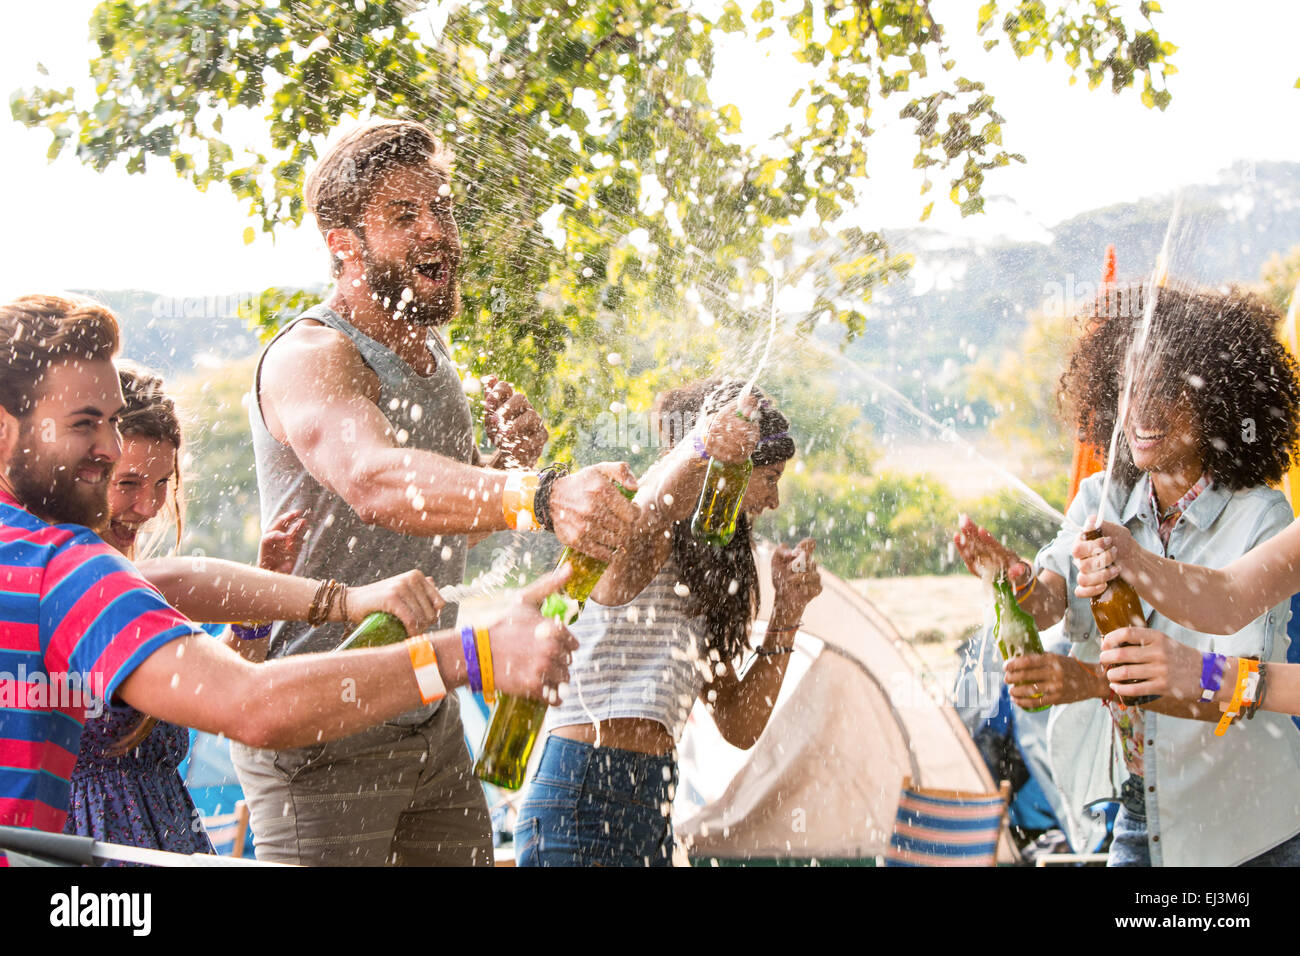 Hipsters spraying beer over each other - Stock Image